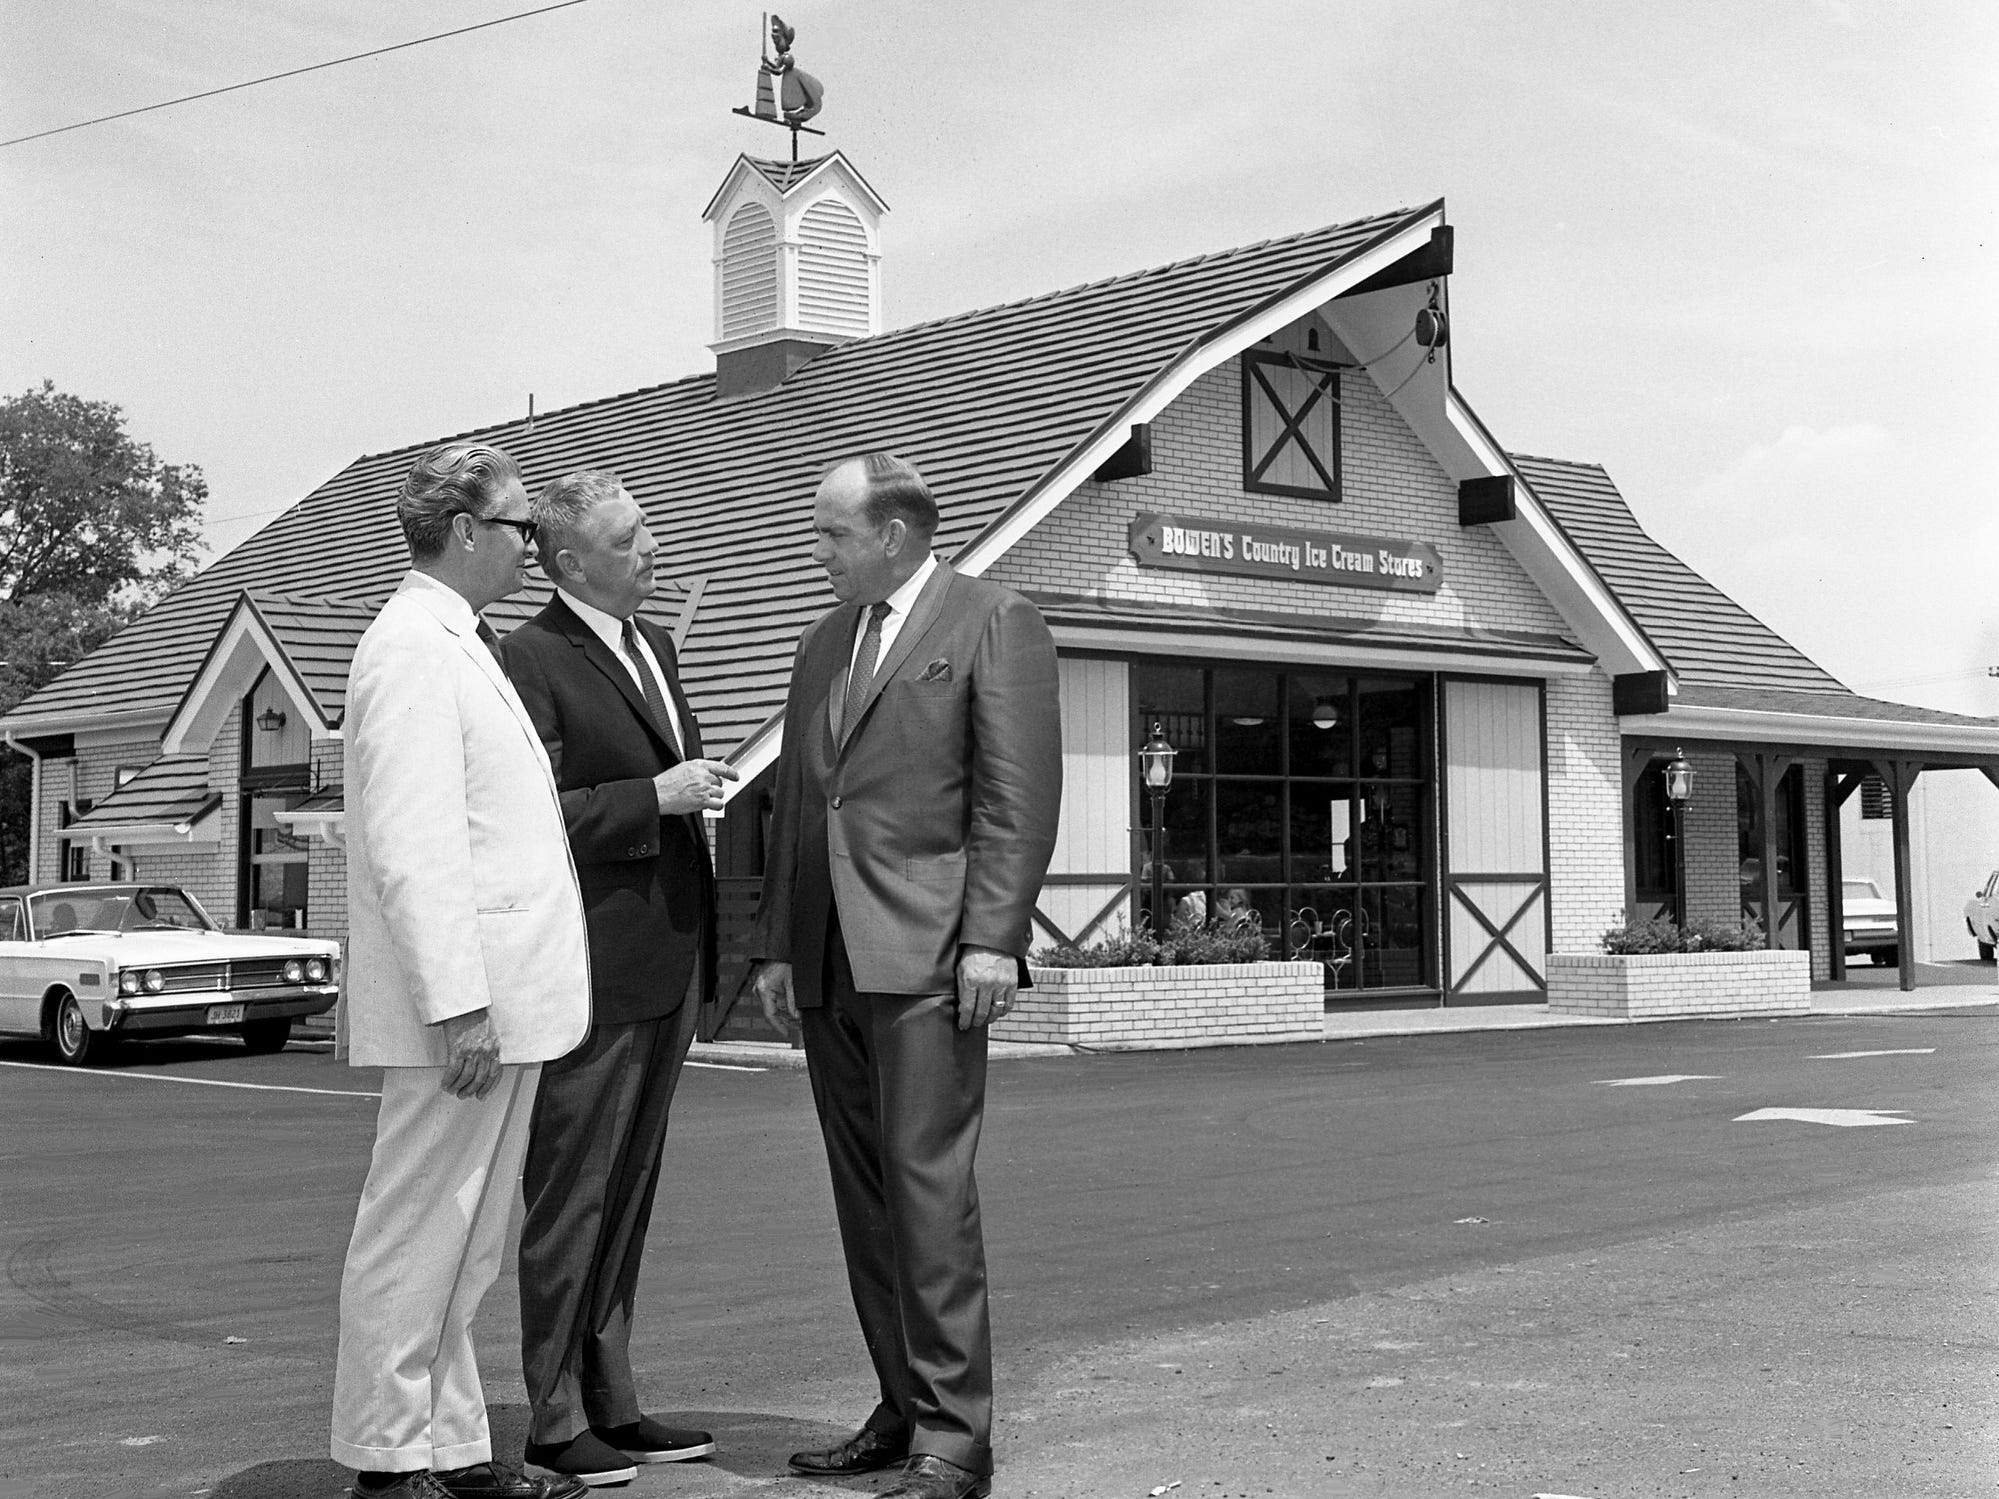 Robert Bowen, right, and business associates Joe Sutton, left, and Carl W. Little check out the first Bowen's County Ice Cream Stores, an old-fashioned ice cream parlor, on its grand opening June 20, 1968, at 3920 Nolensville Road.